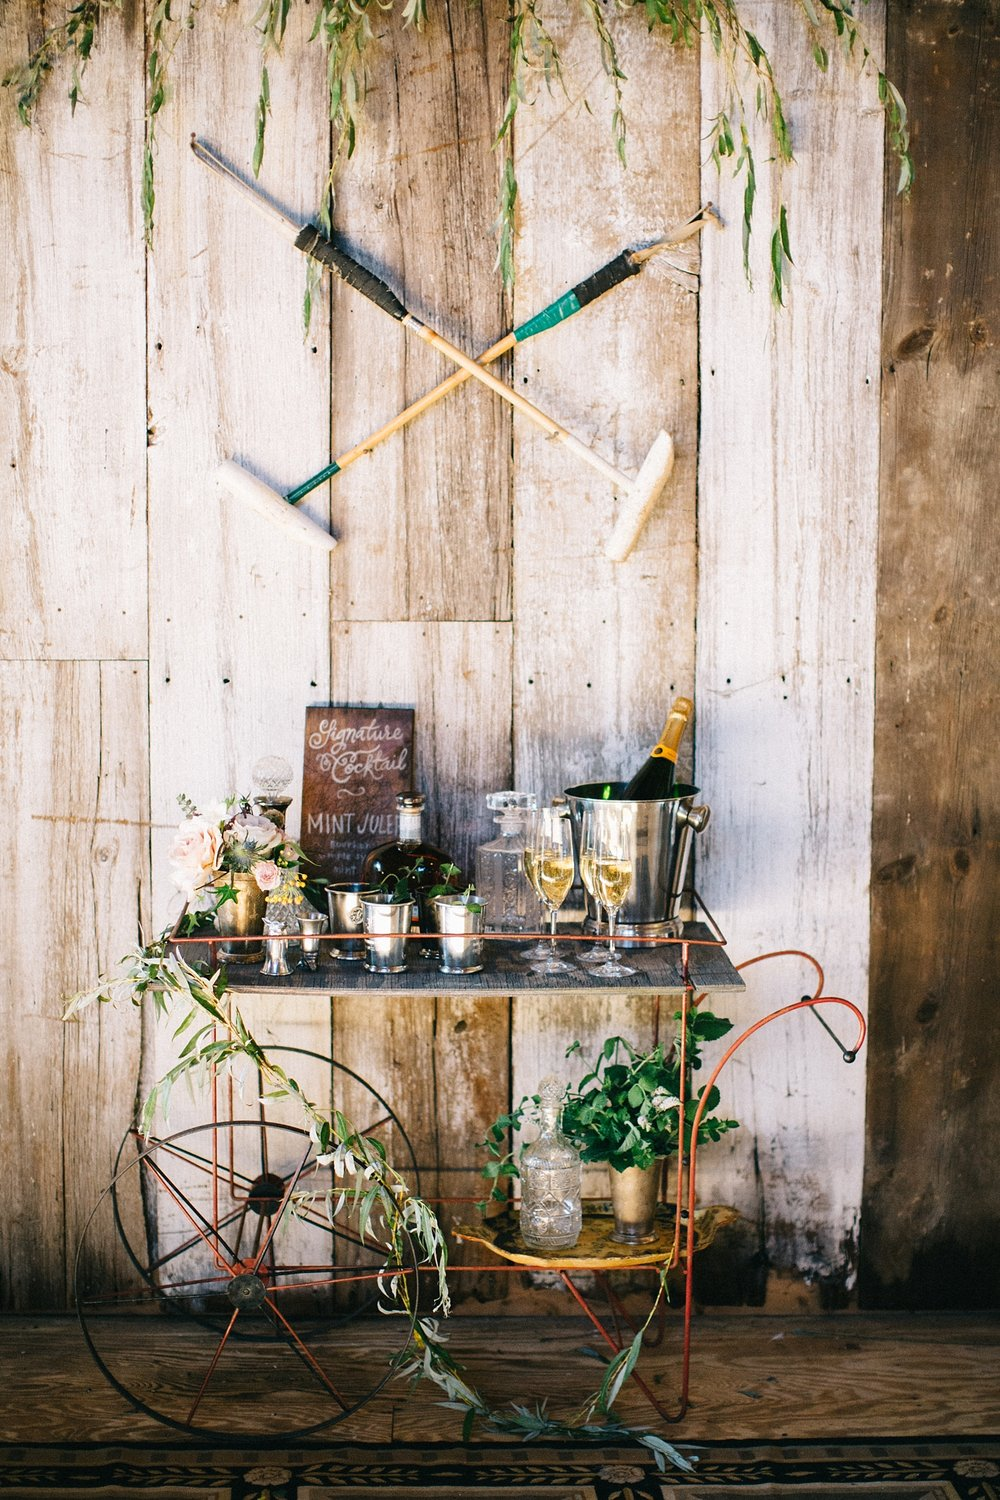 """Every event needs a signature cocktail, and nothing says """"equestrian"""" like a Mint Julep. We decked out this barn cart from Vintage Vogue Event Rentals with a custom sign and floral styling from Sapphire & Lace. This decor combined with julep and stirrup cups from Powers Polo School made for an excellent authentic experience. The cart was crowned with crossed foot mallets."""